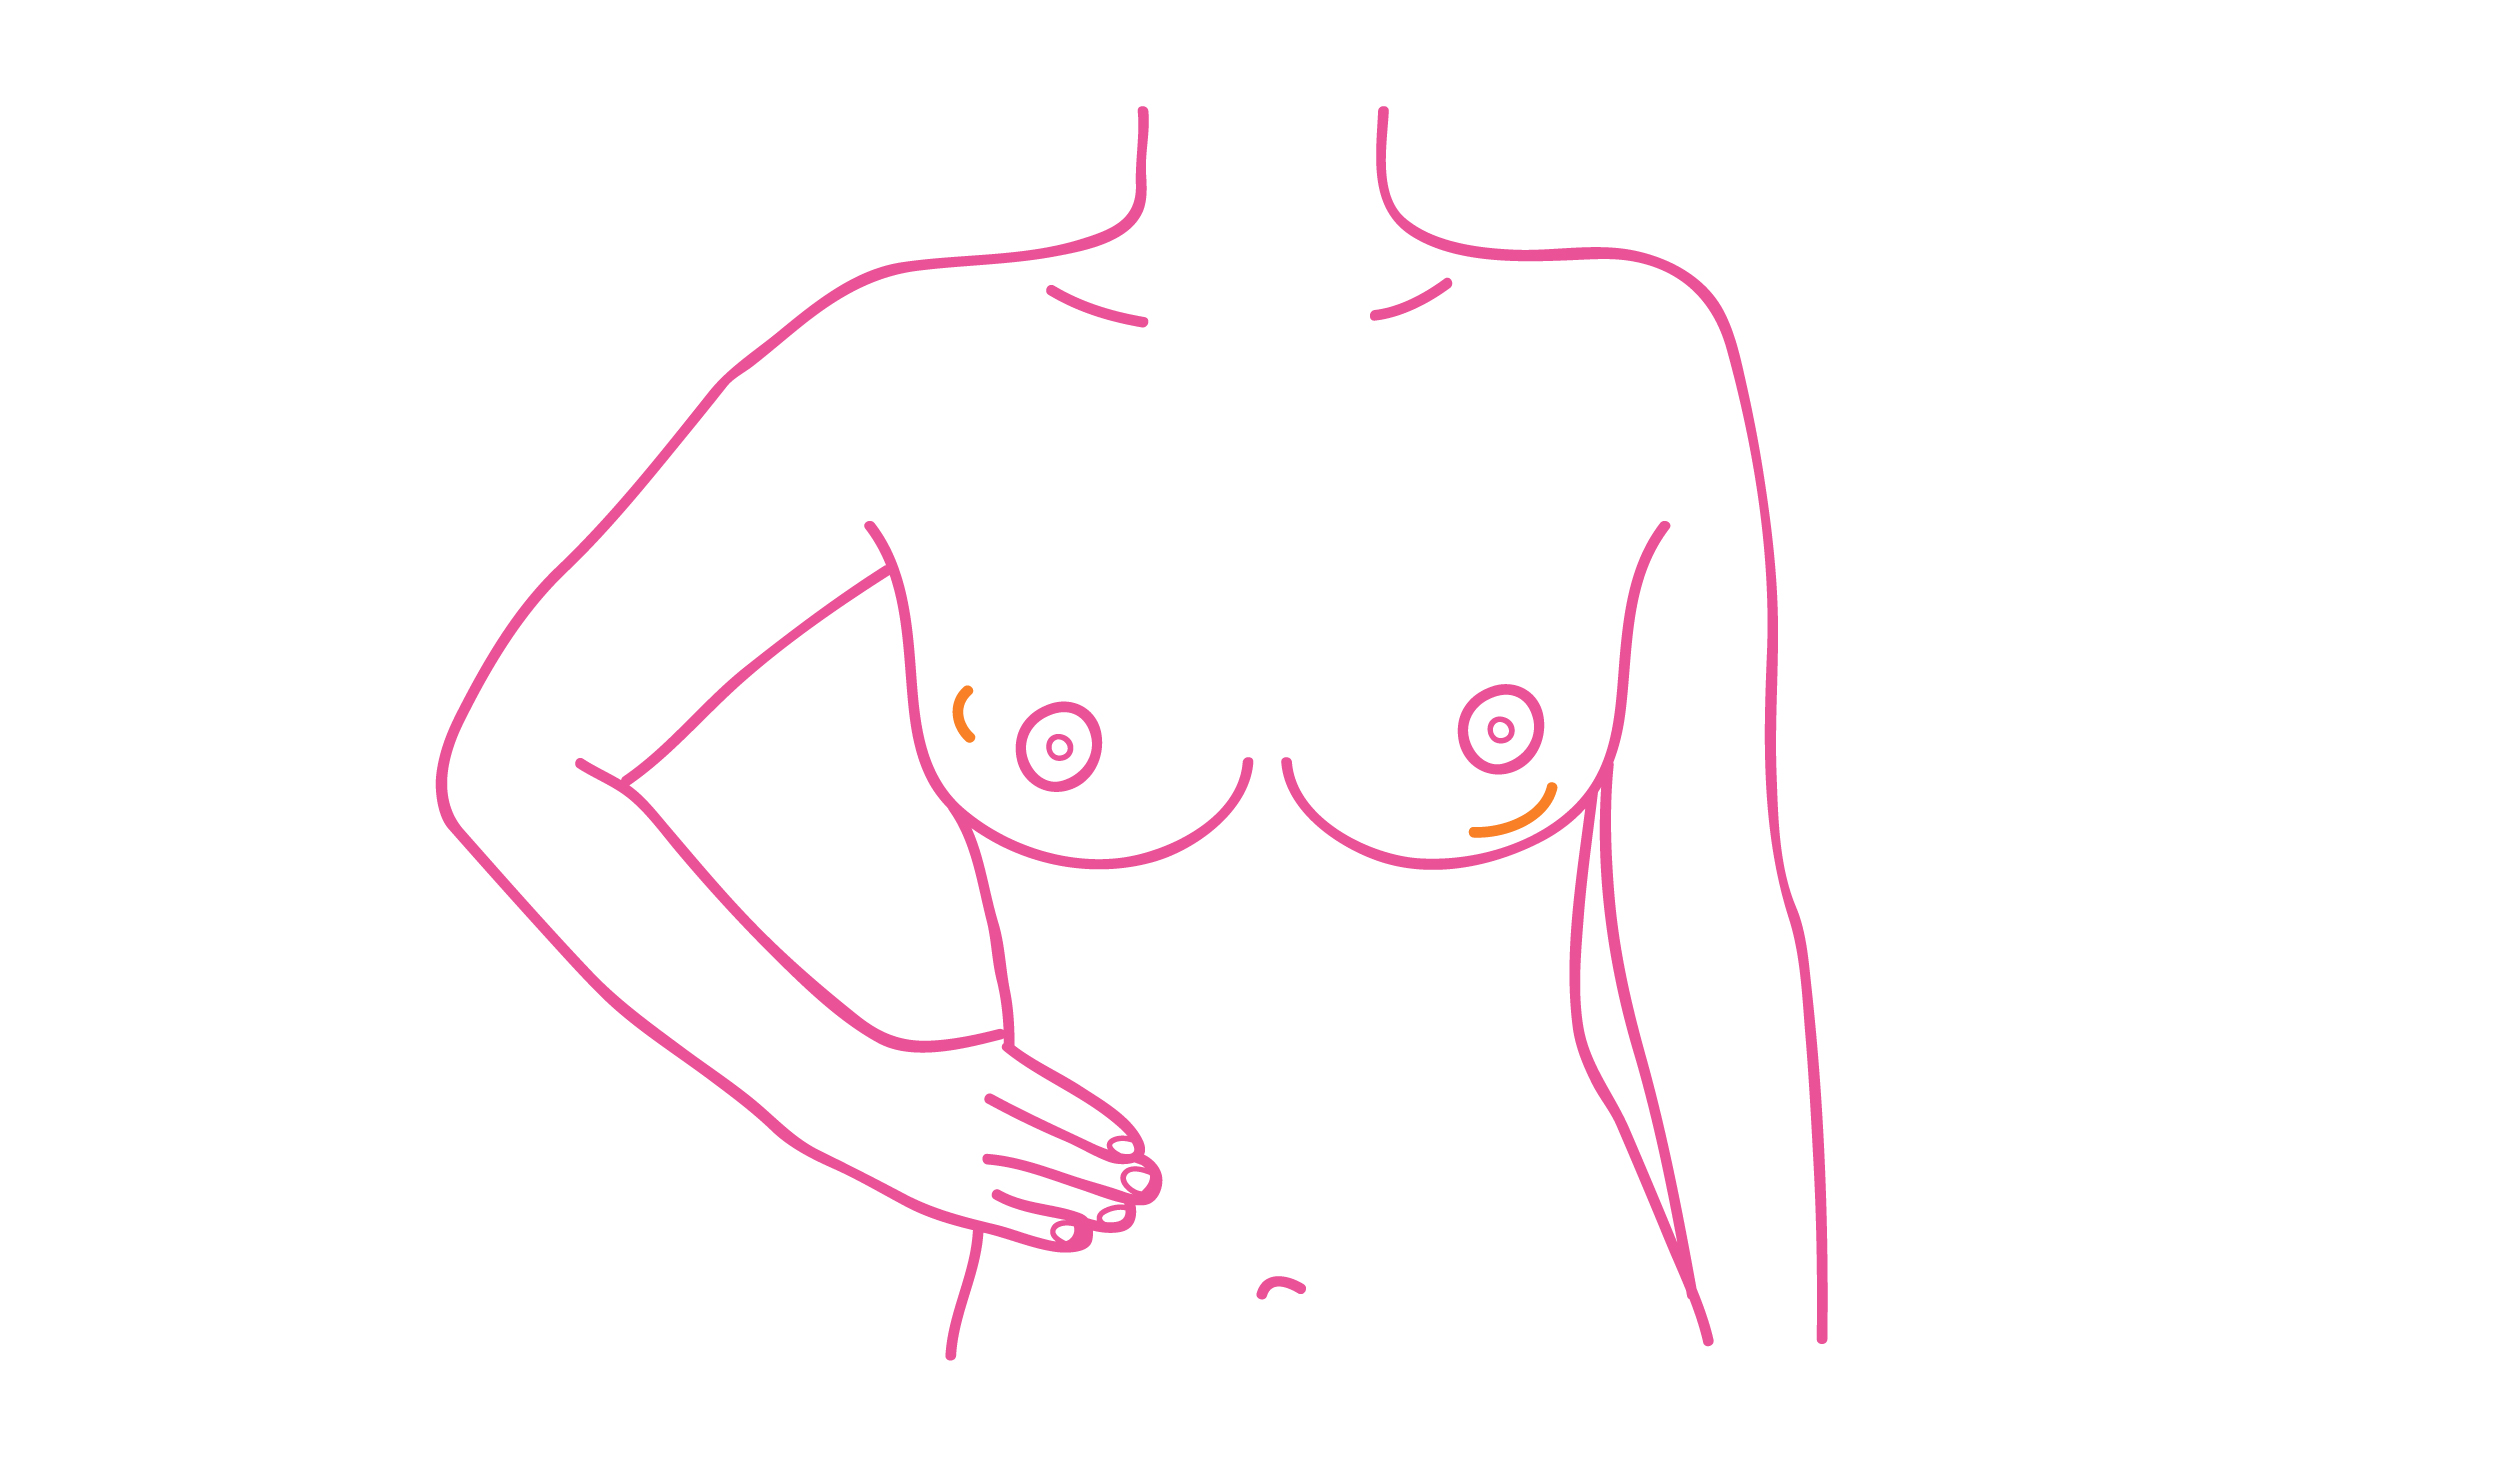 A lump, lumpiness or thickening that feels different from the rest of the breast, especially if it is only in one breast